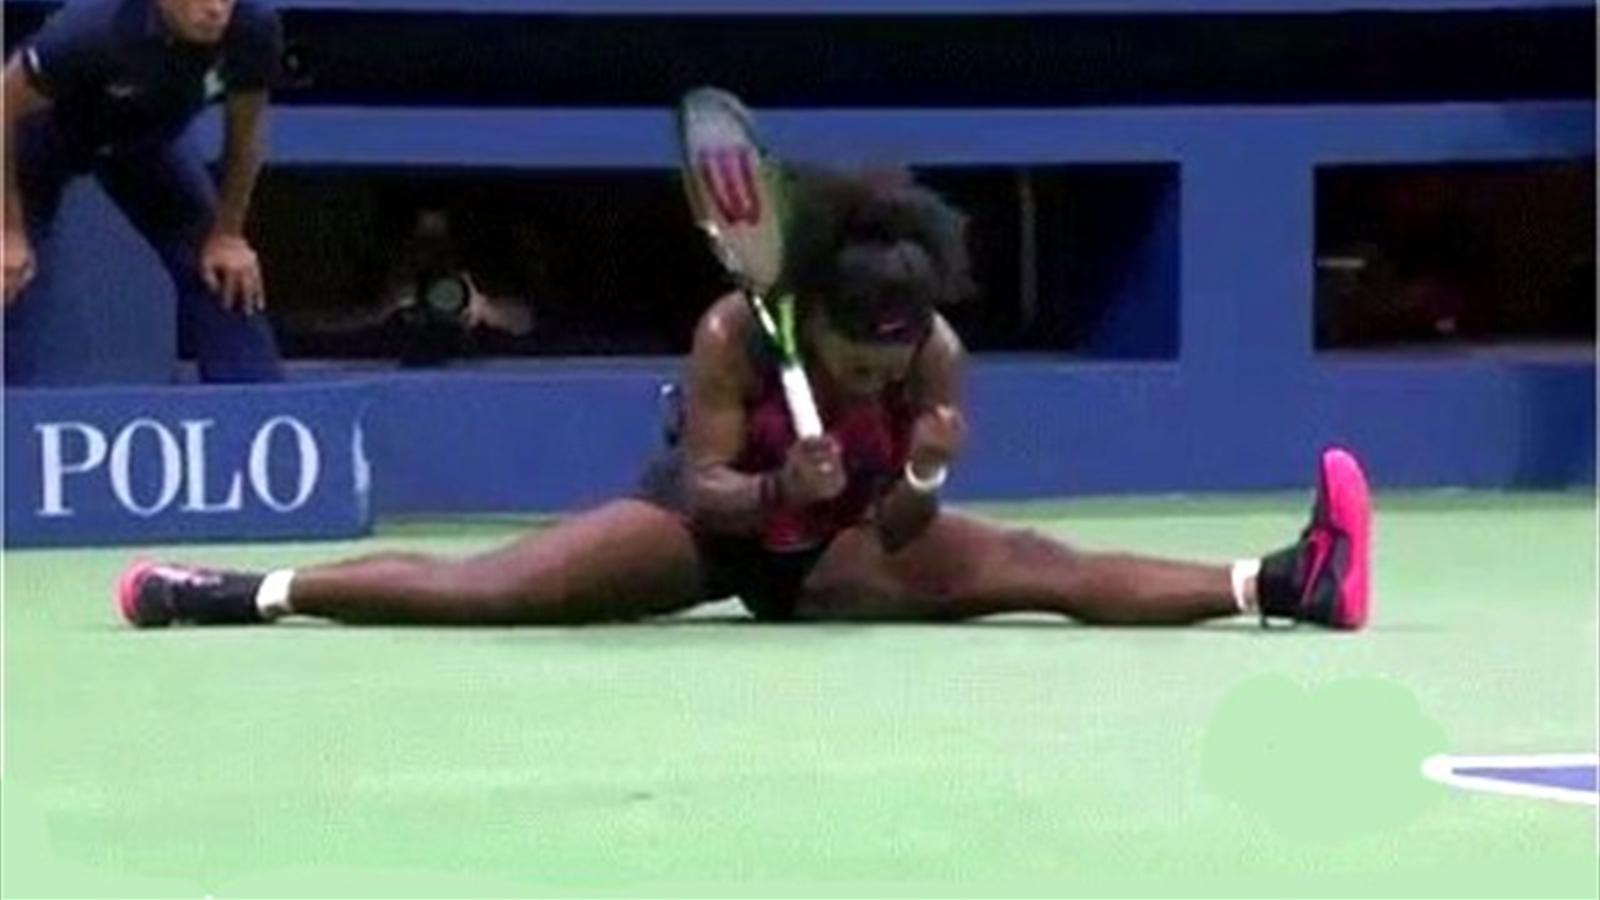 Serena Williams does the splits and still wins the point at the US Open